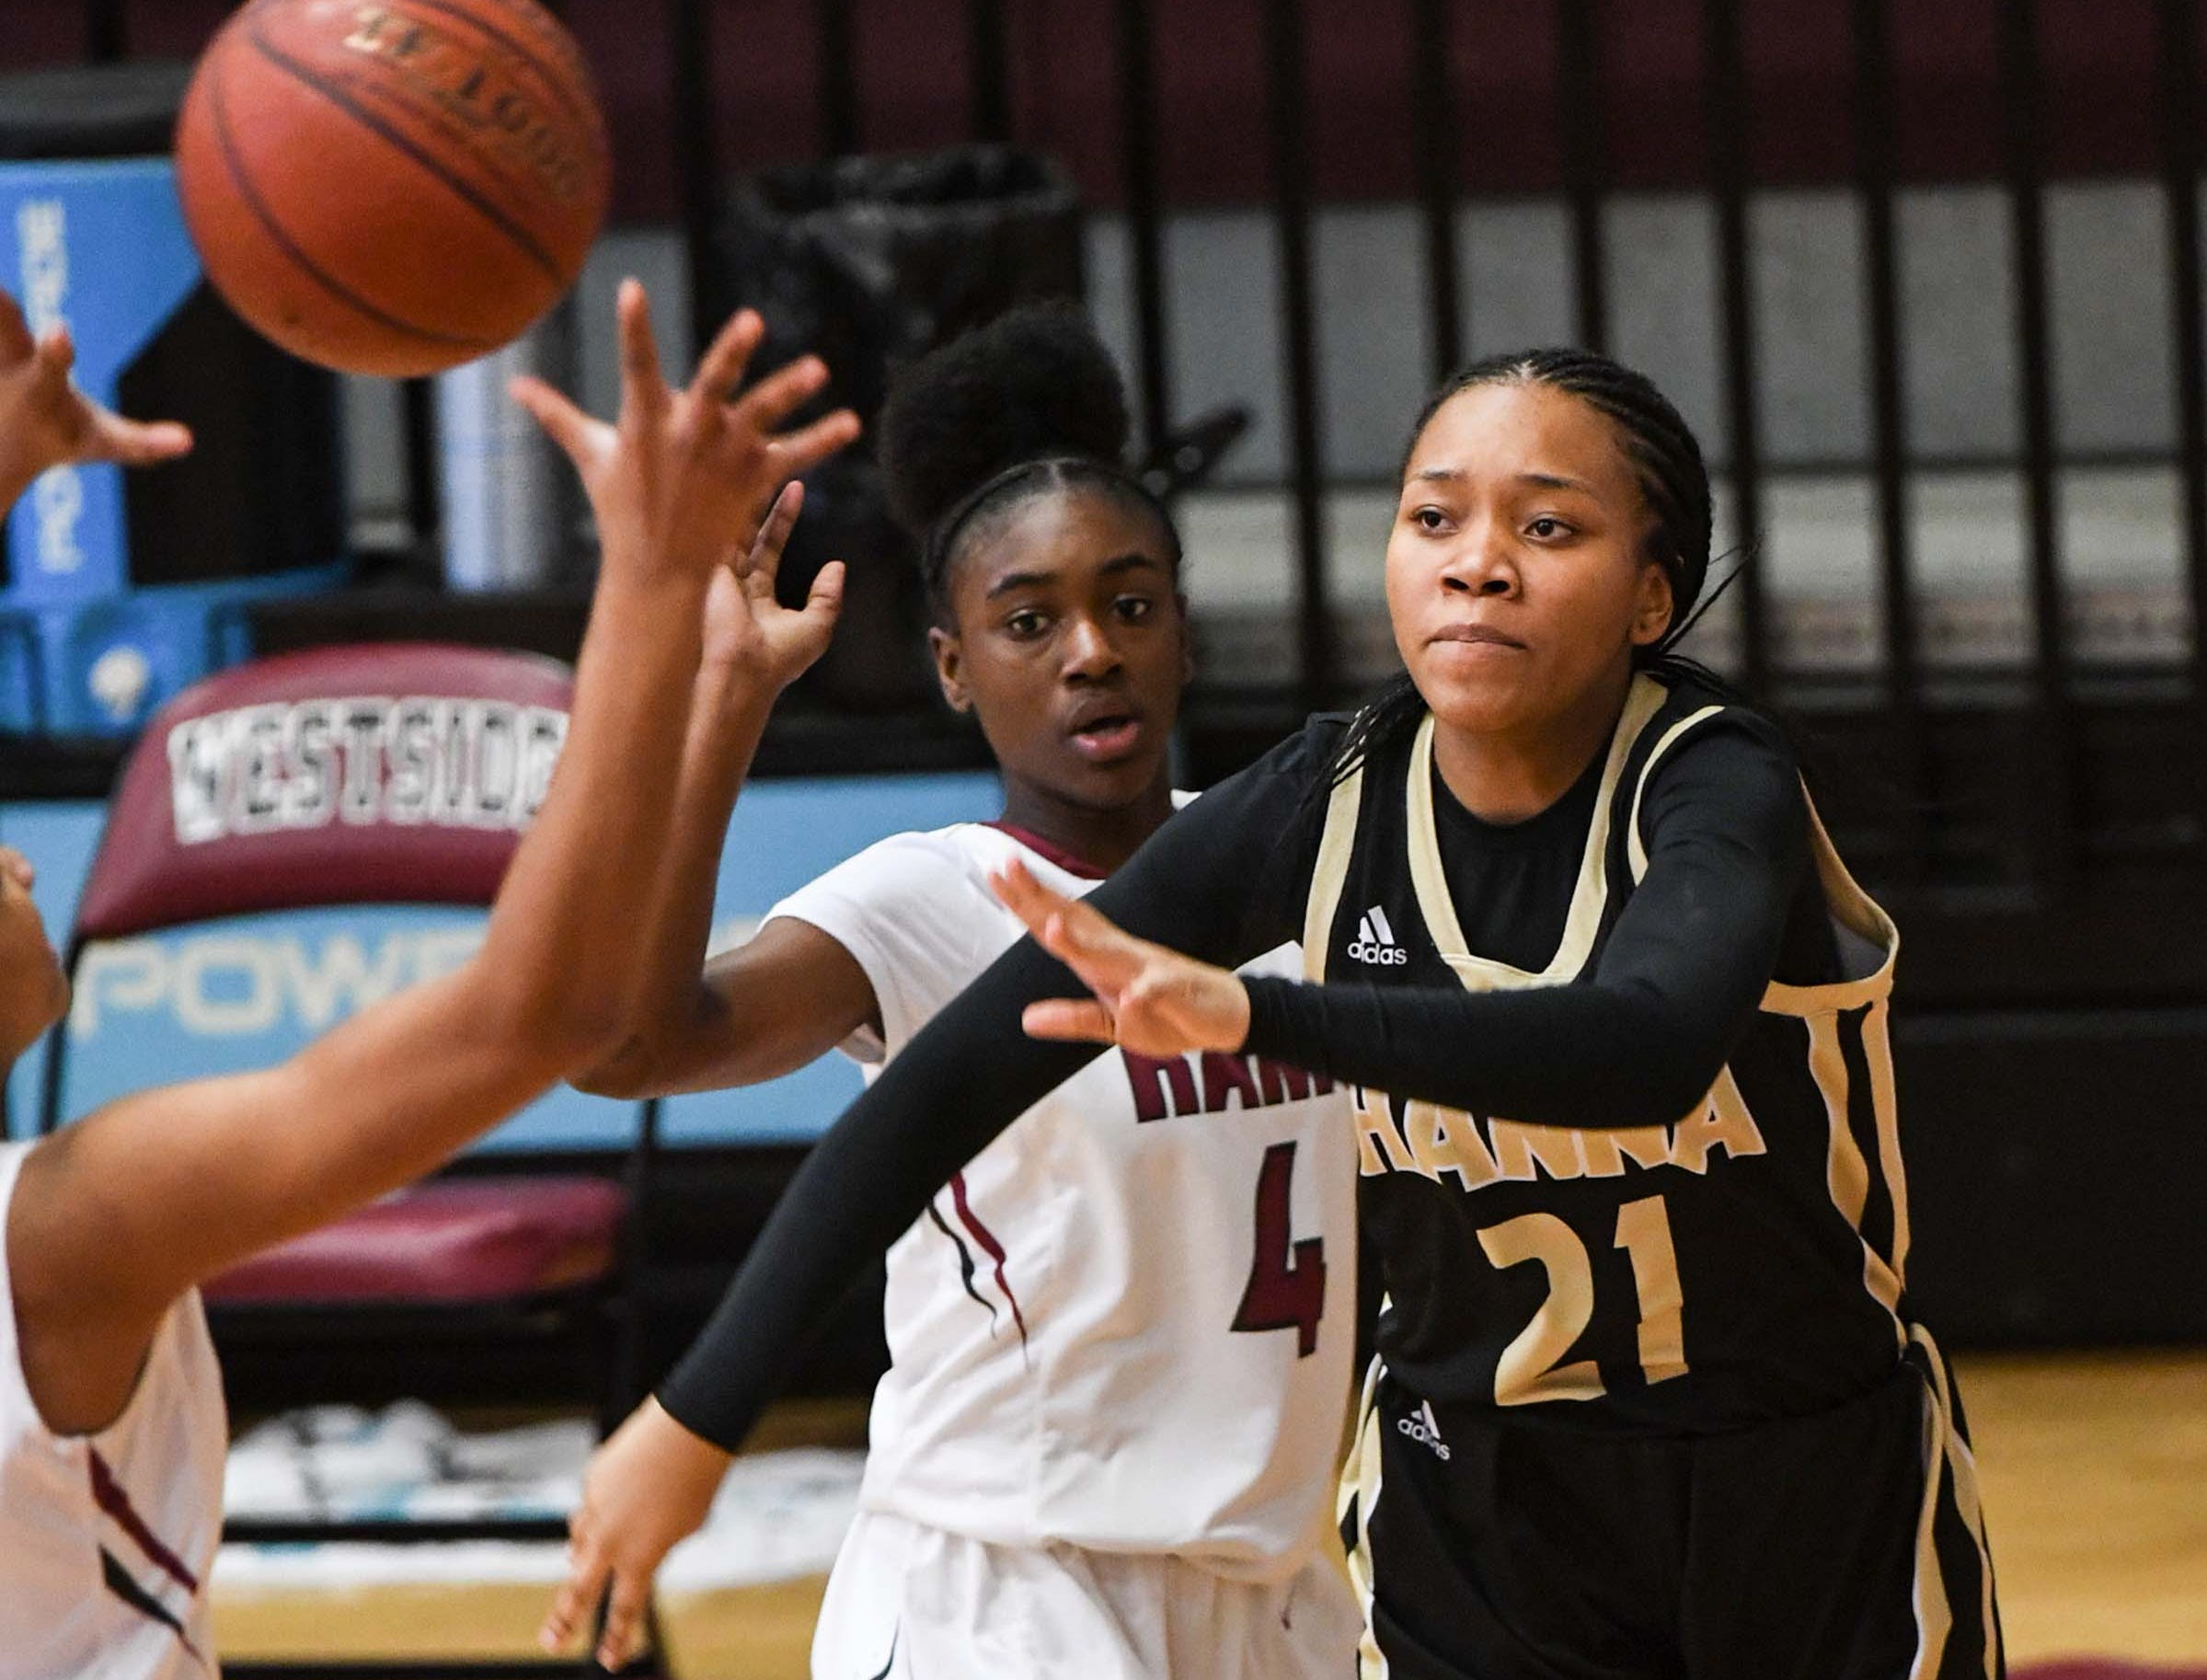 TL Hanna junior Azariah Thomas(21) near Westside freshman Aziyah Bell(4) during the first quarter at Westside High School in Anderson on Friday.